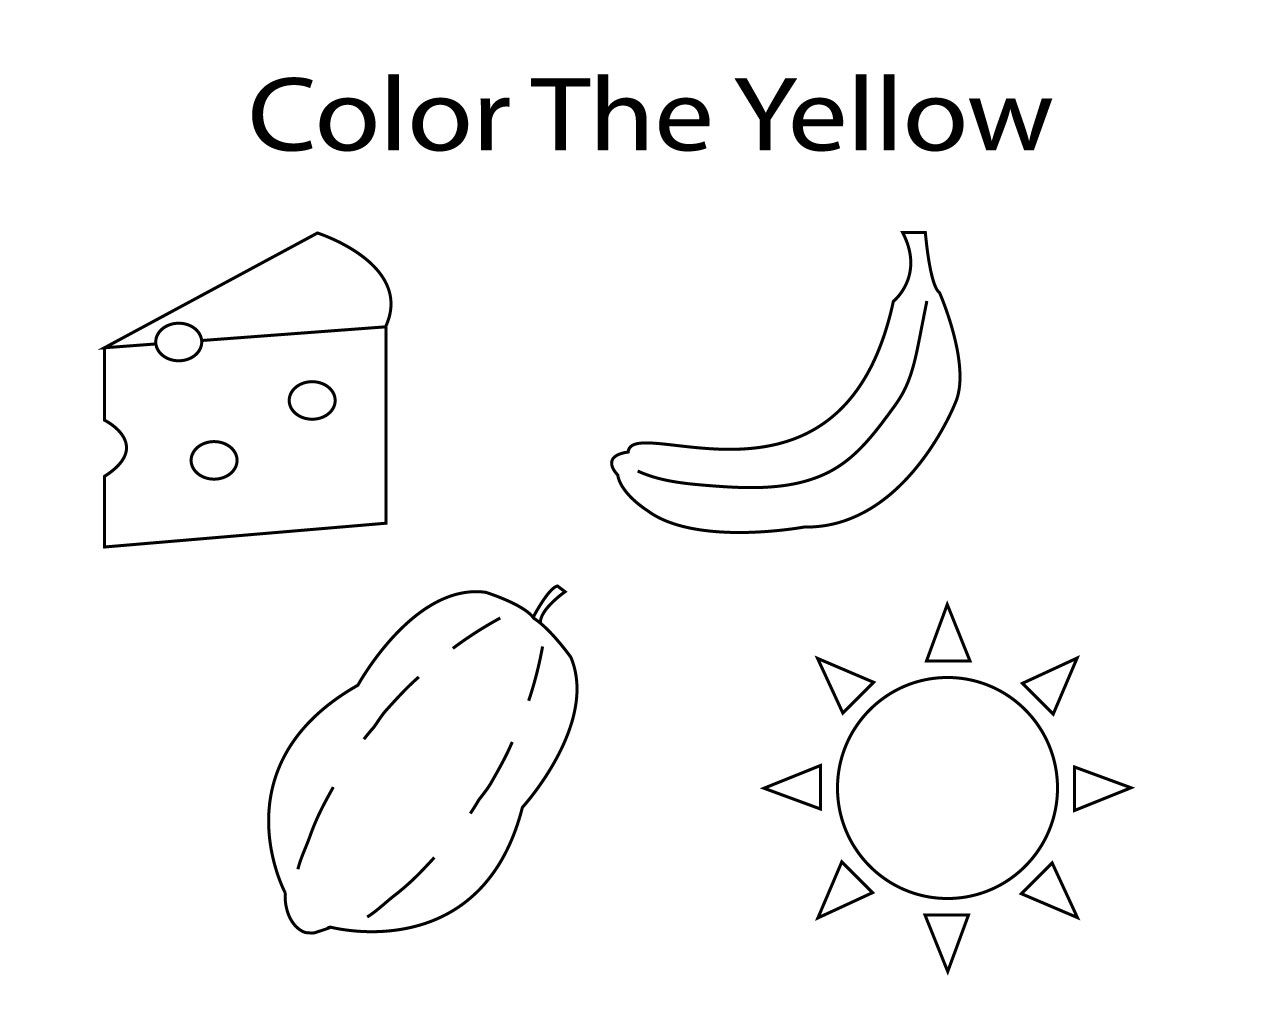 yellow coloring worksheets yellow coloring page twisty noodle worksheets yellow coloring